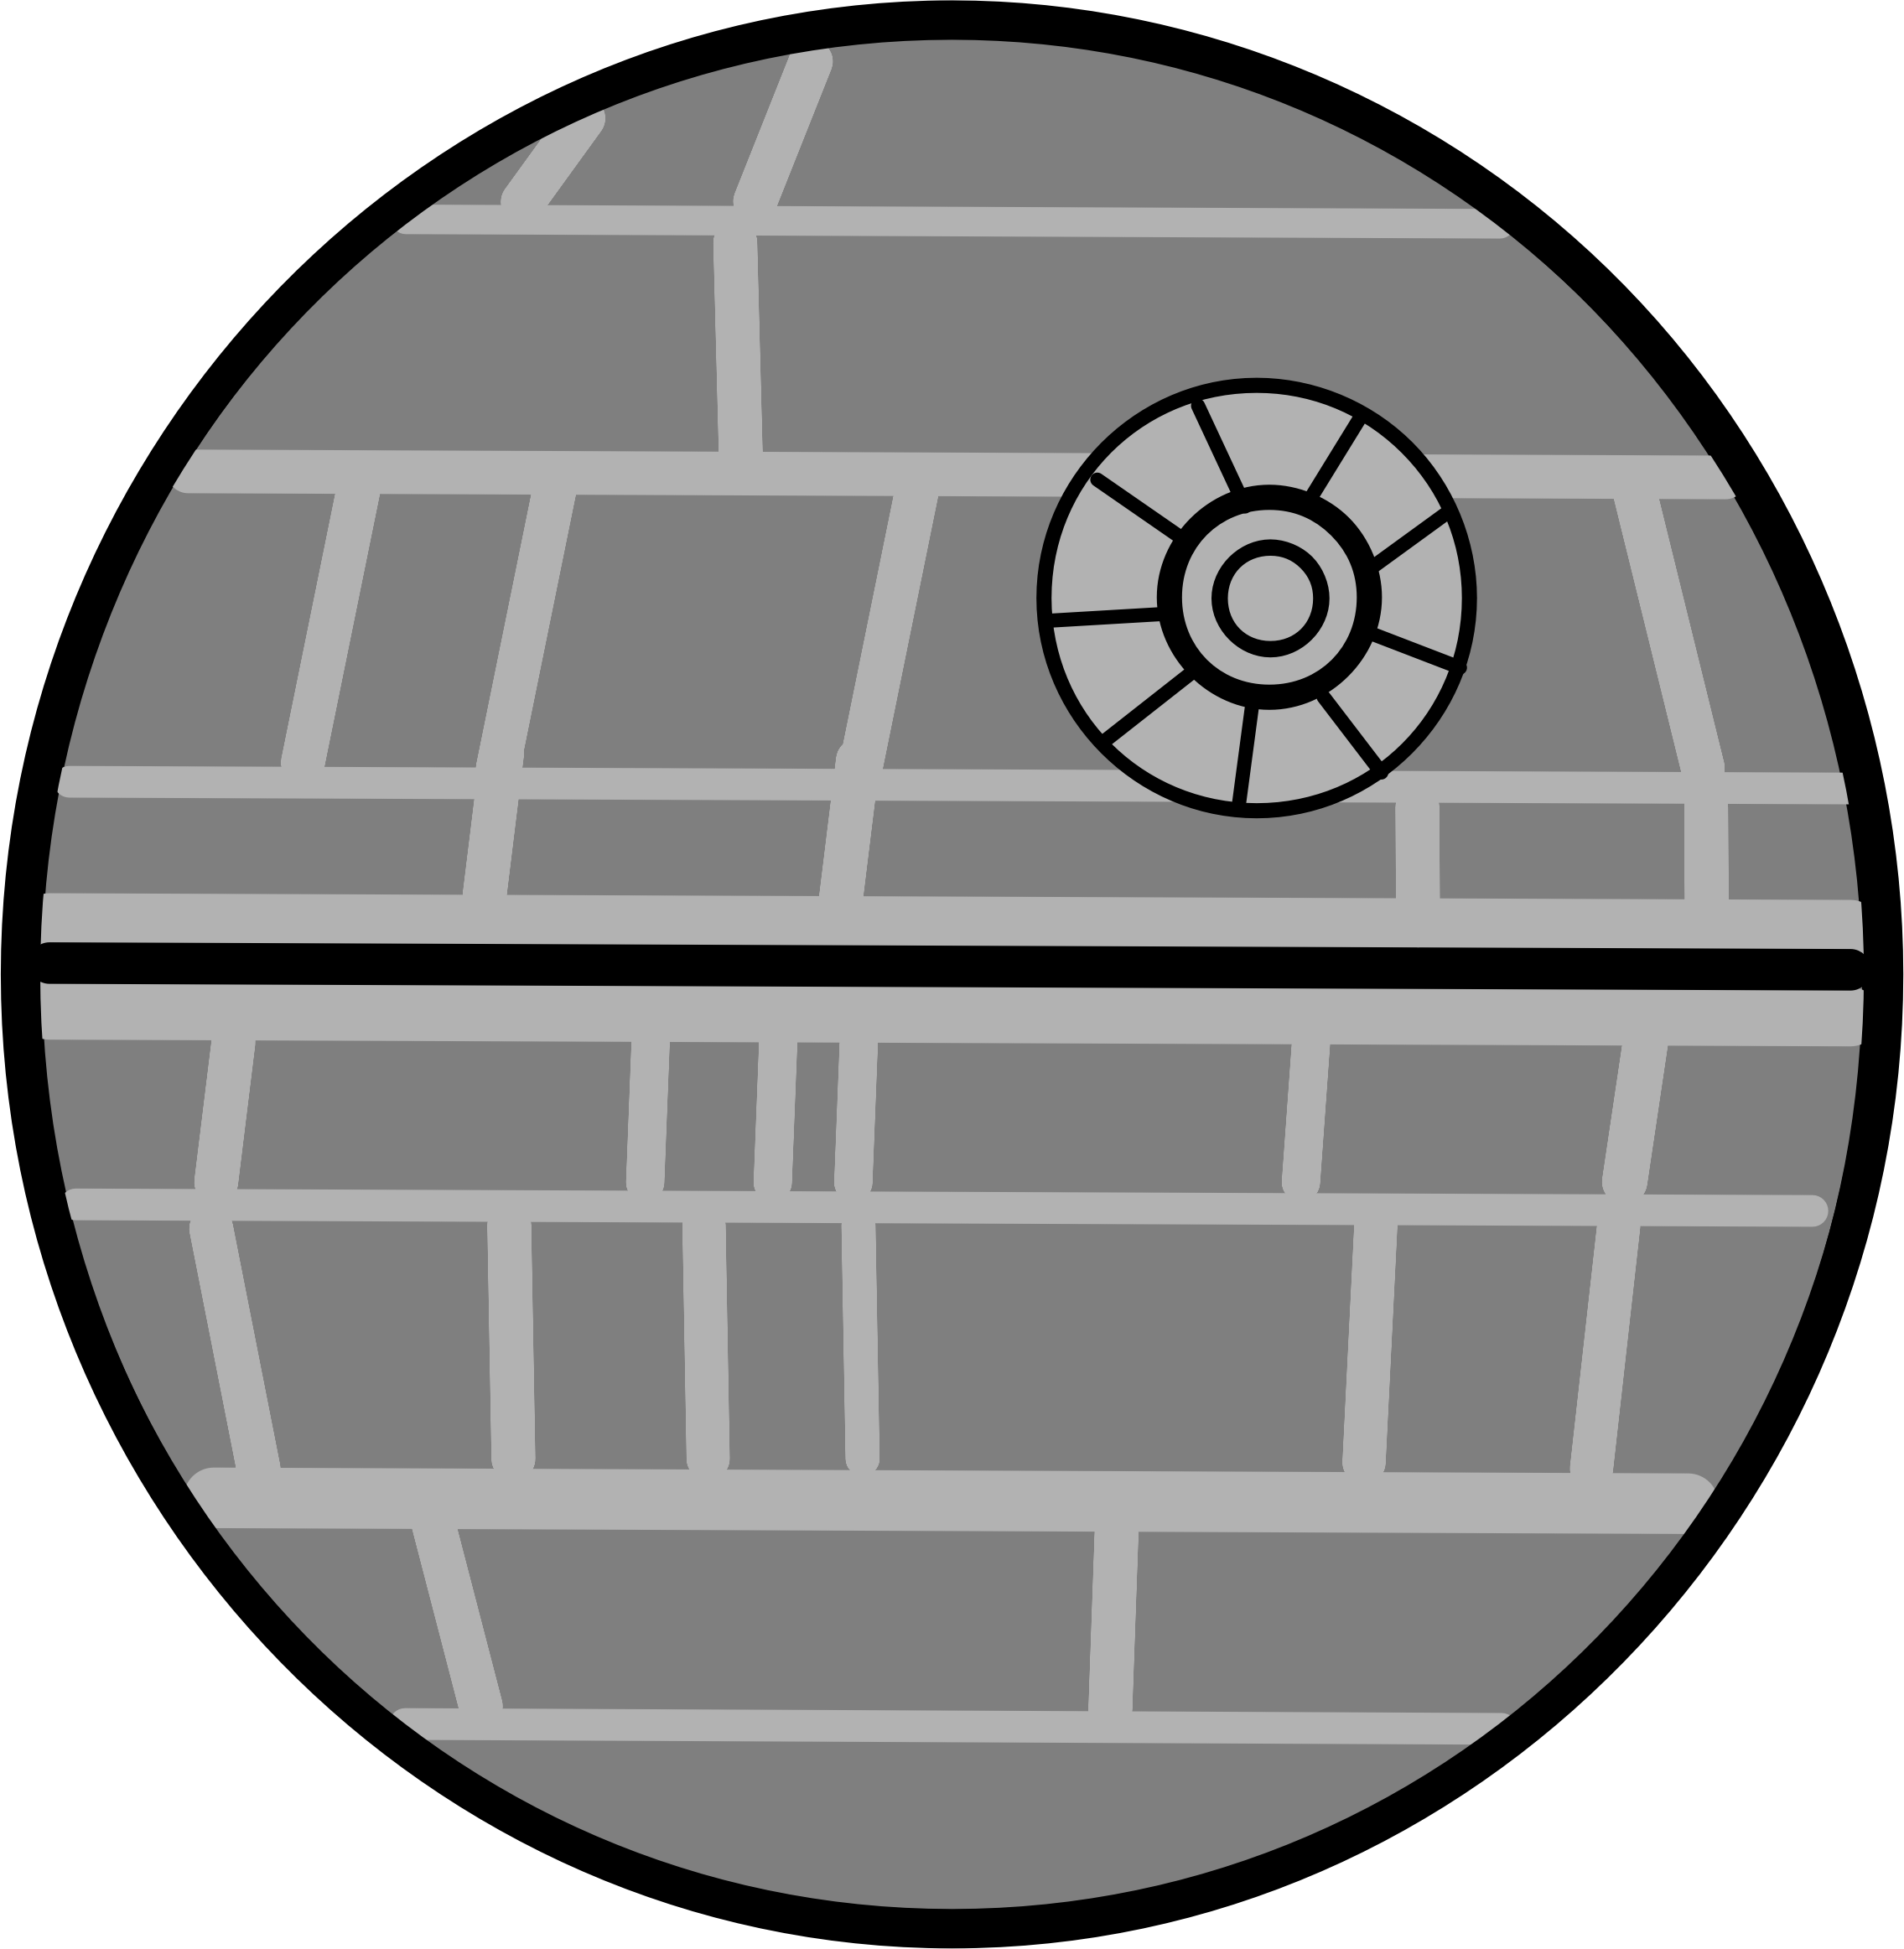 Death star clipart svg freeuse download Clipart - Death Star Bold svg freeuse download